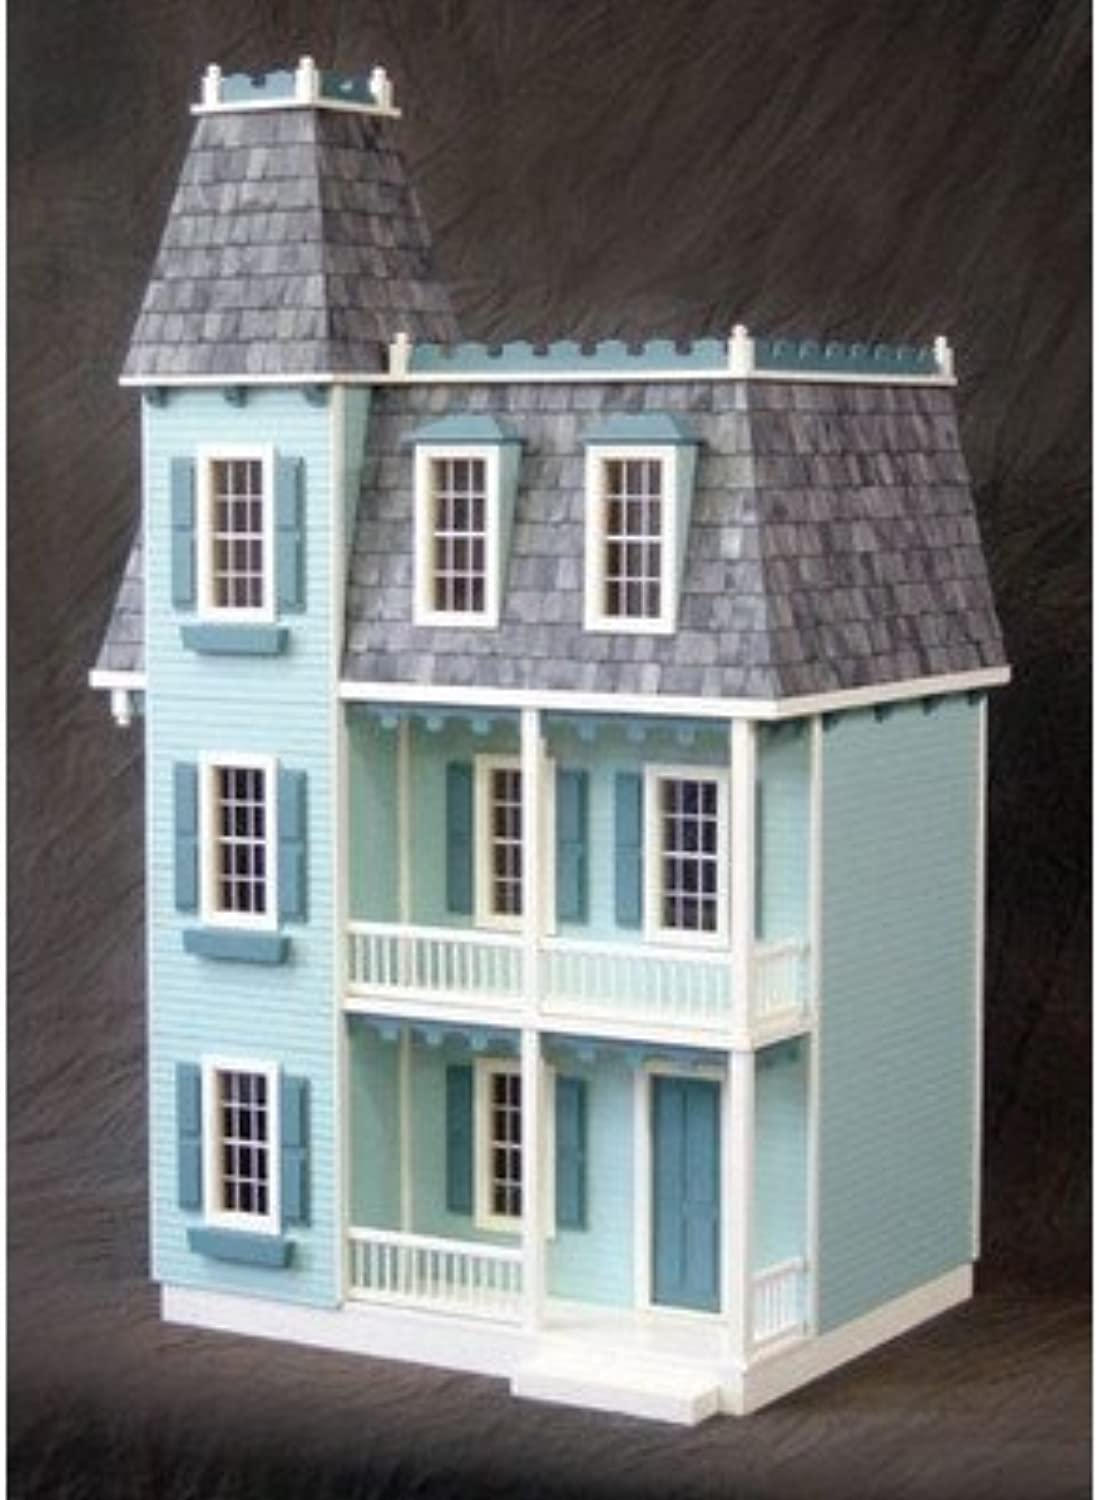 tiendas minoristas Alison Jr. Dollhouse Construction Material  Milled Plywood by by by Real Good Juguetes  muchas sorpresas